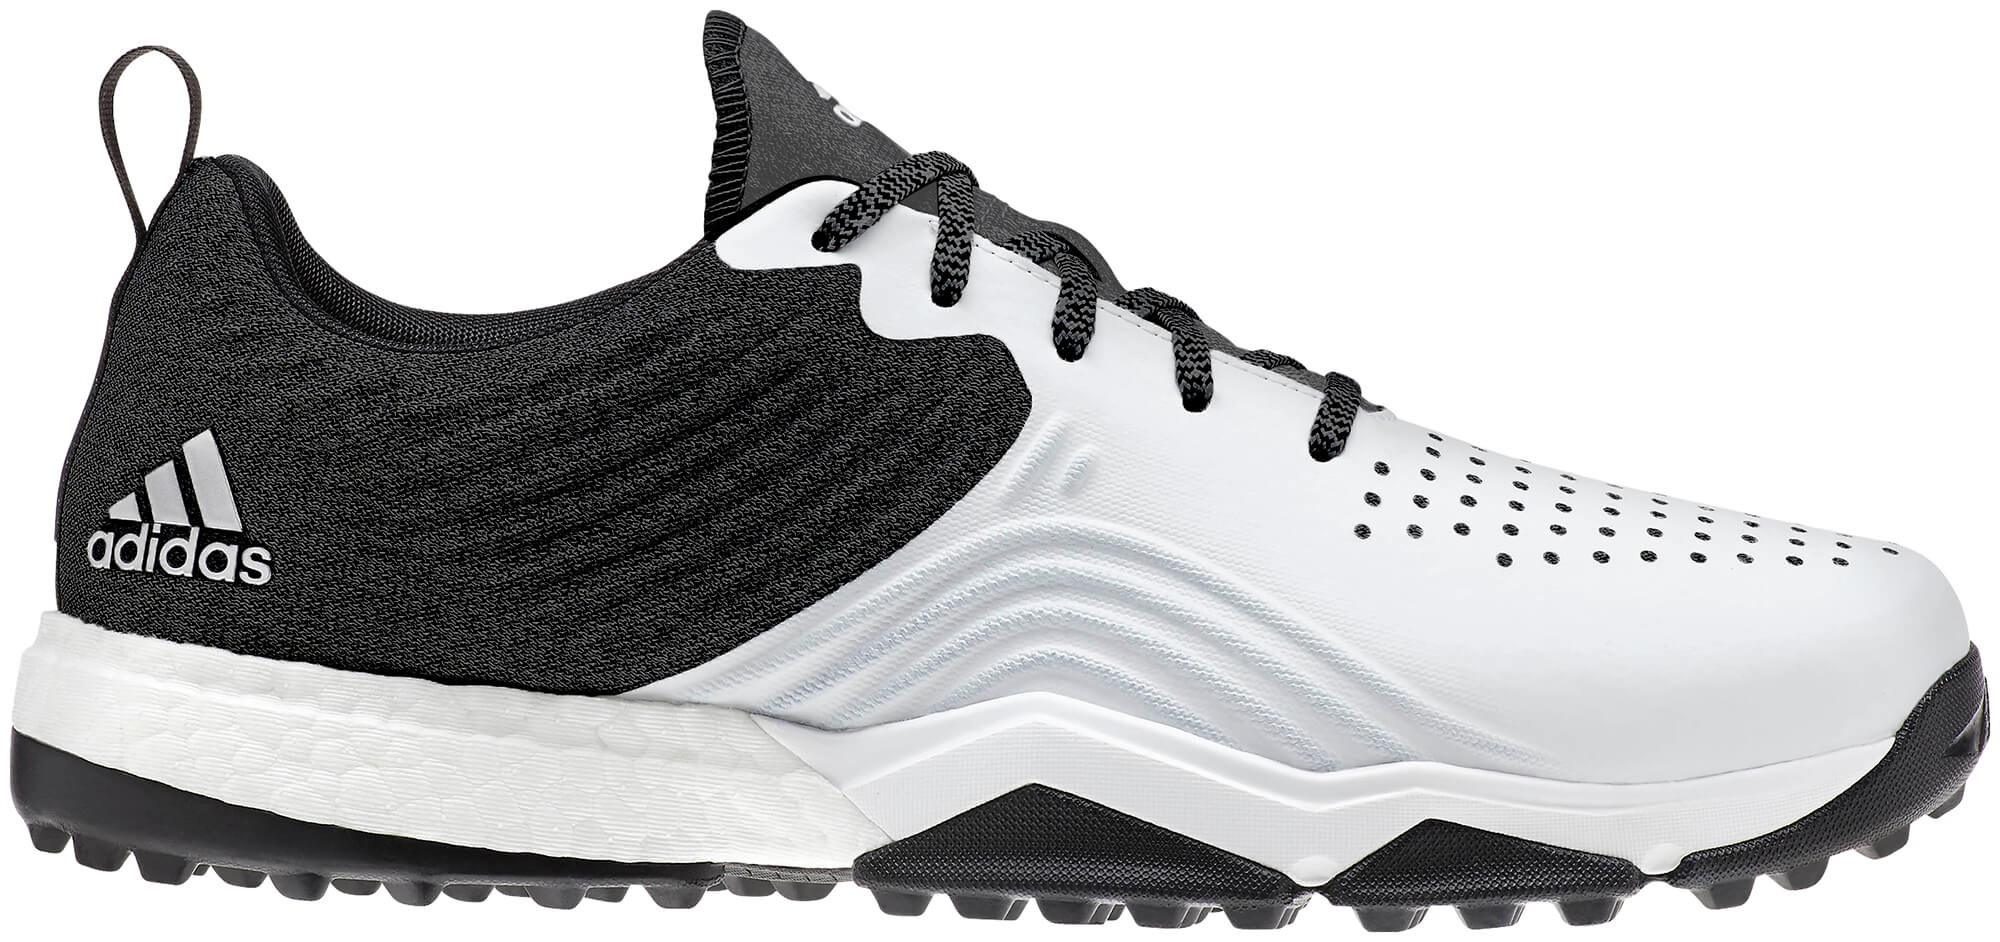 sports shoes 75699 fd1a1 Details about Adidas AdiPower 4orged S Golf Shoes BlackWhiteSilver Mens  New - Choose Size!